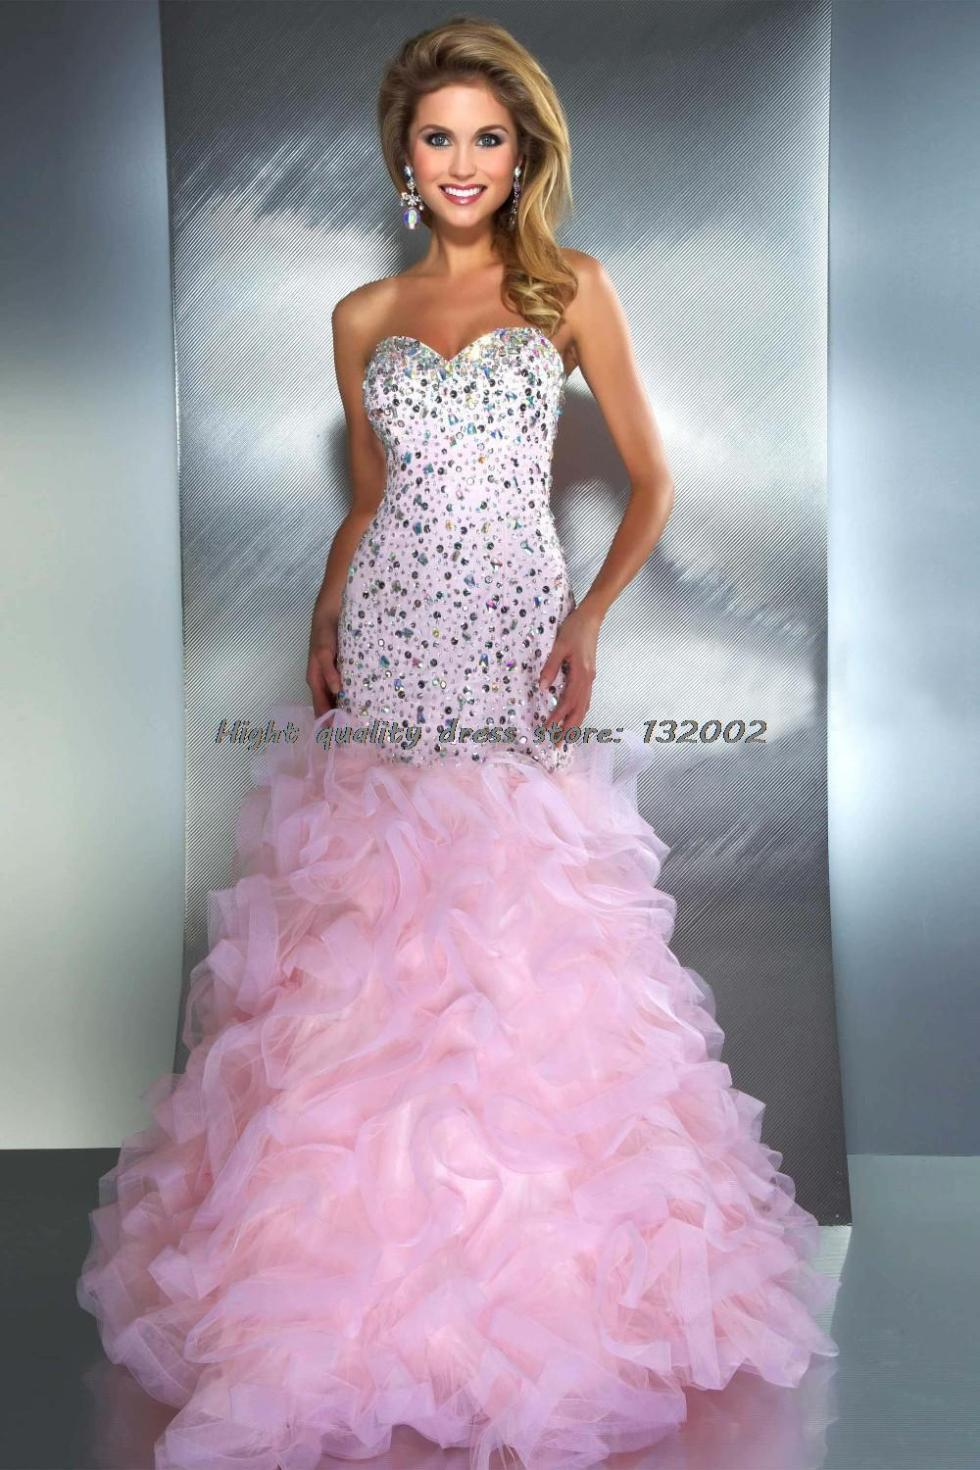 Old Fashioned Prom Dresses In Duluth Mn Picture Collection - Wedding ...